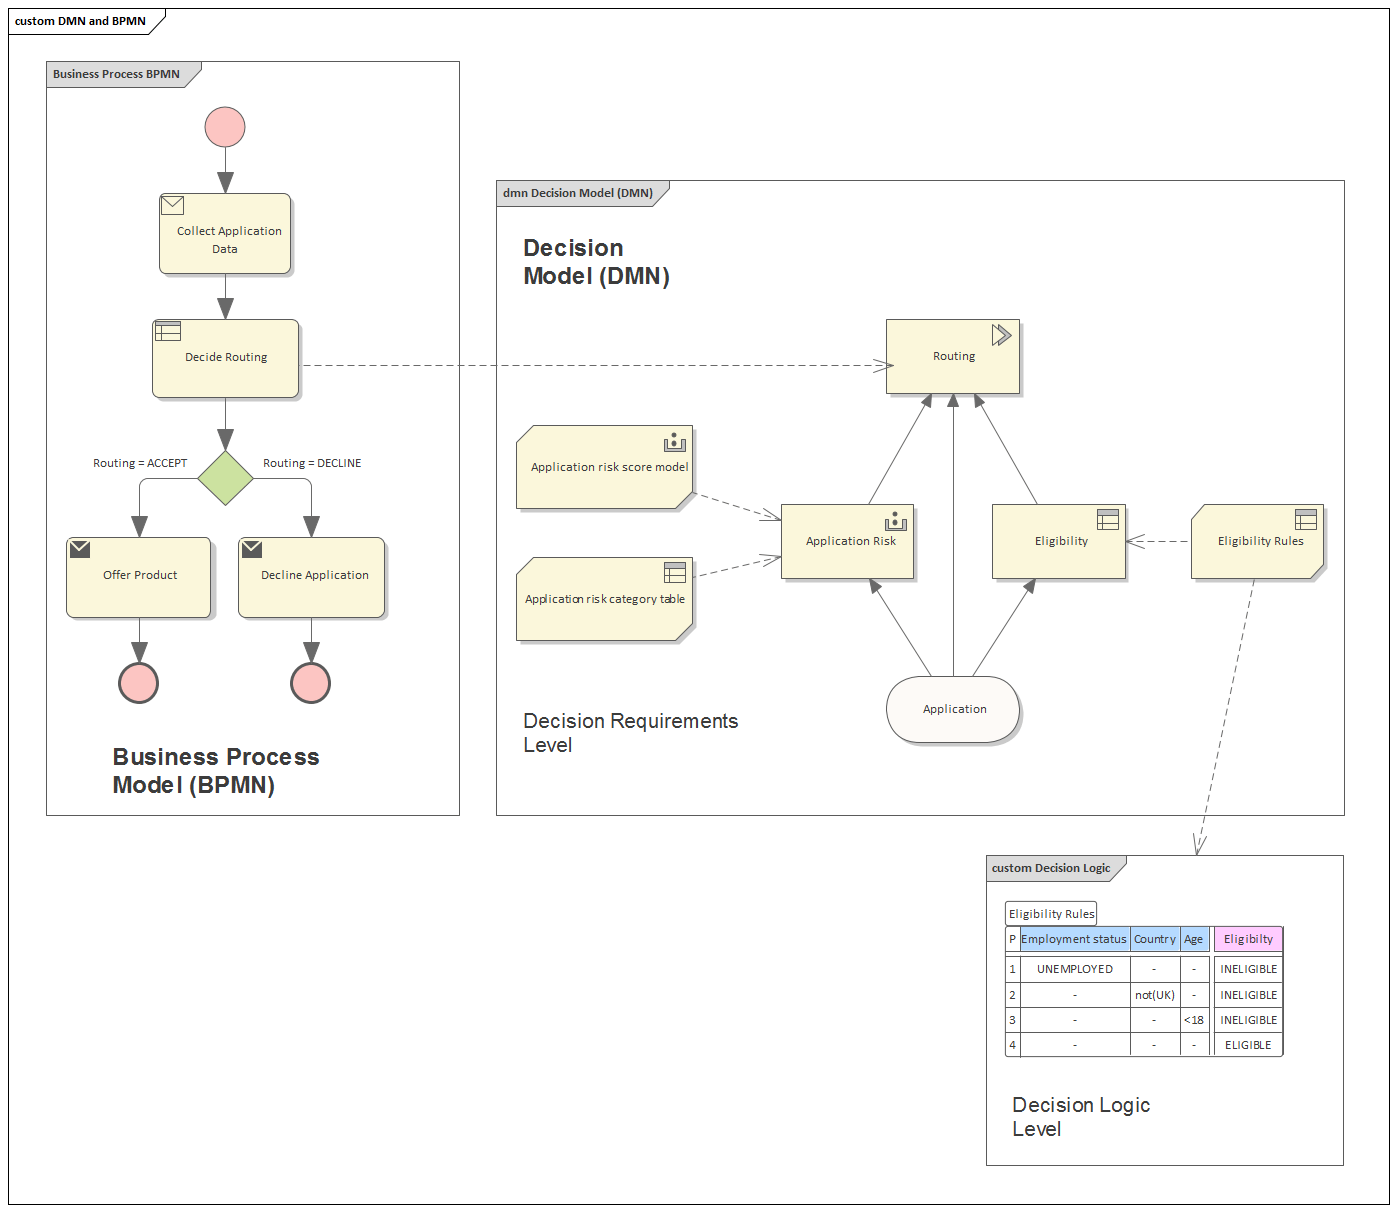 hight resolution of taken together decision requirements diagrams and decision logic allows you to build a complete decision model that complements a business process model by